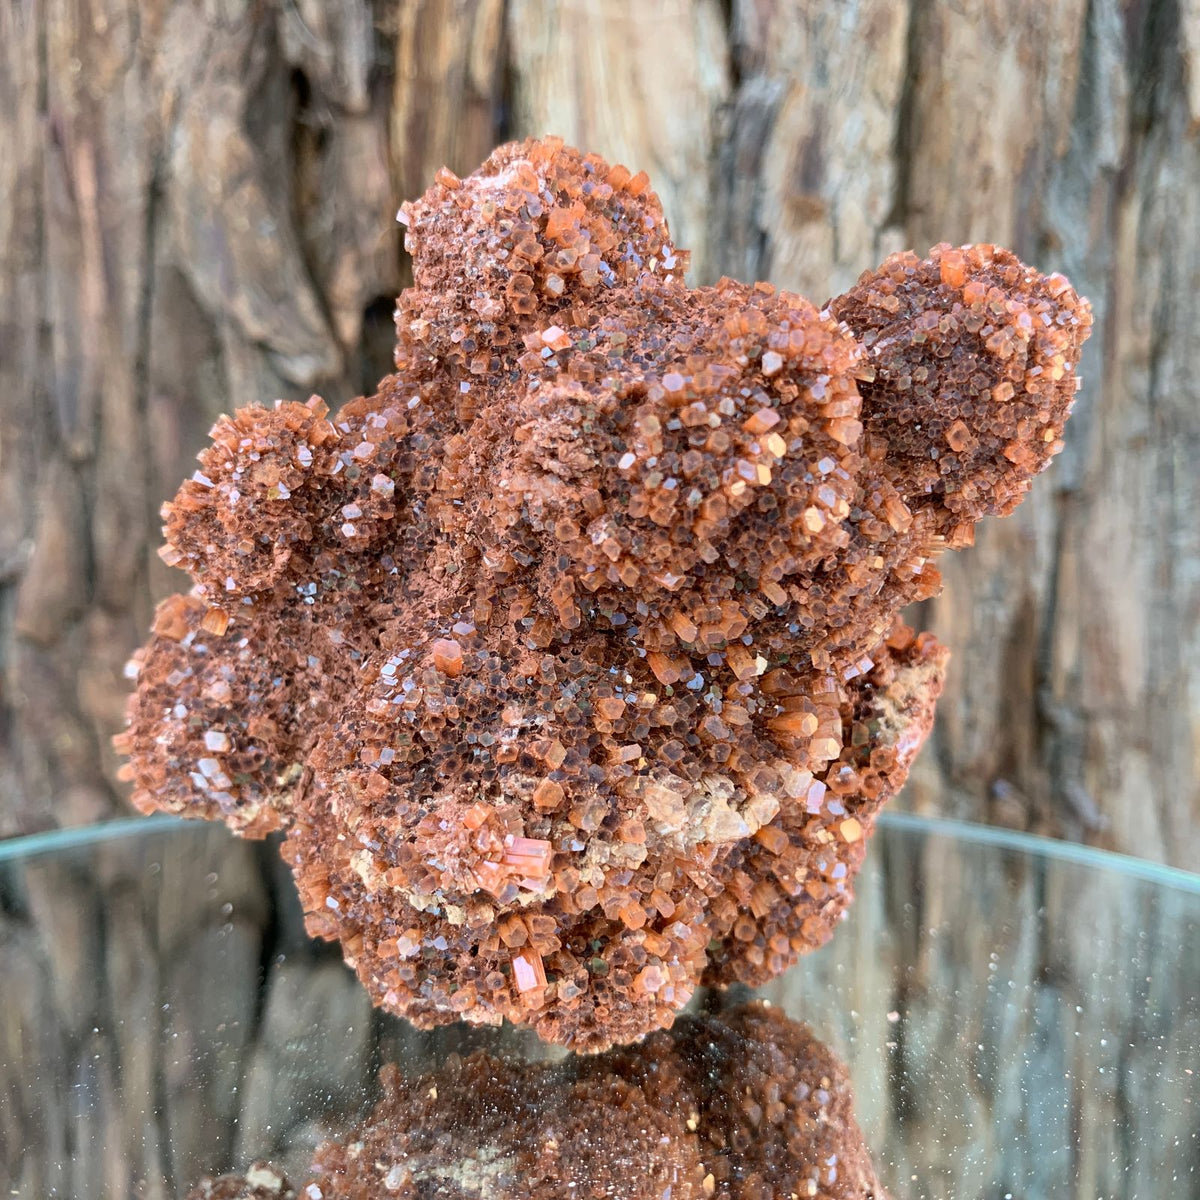 10cm 256g Aragonite from Morocco